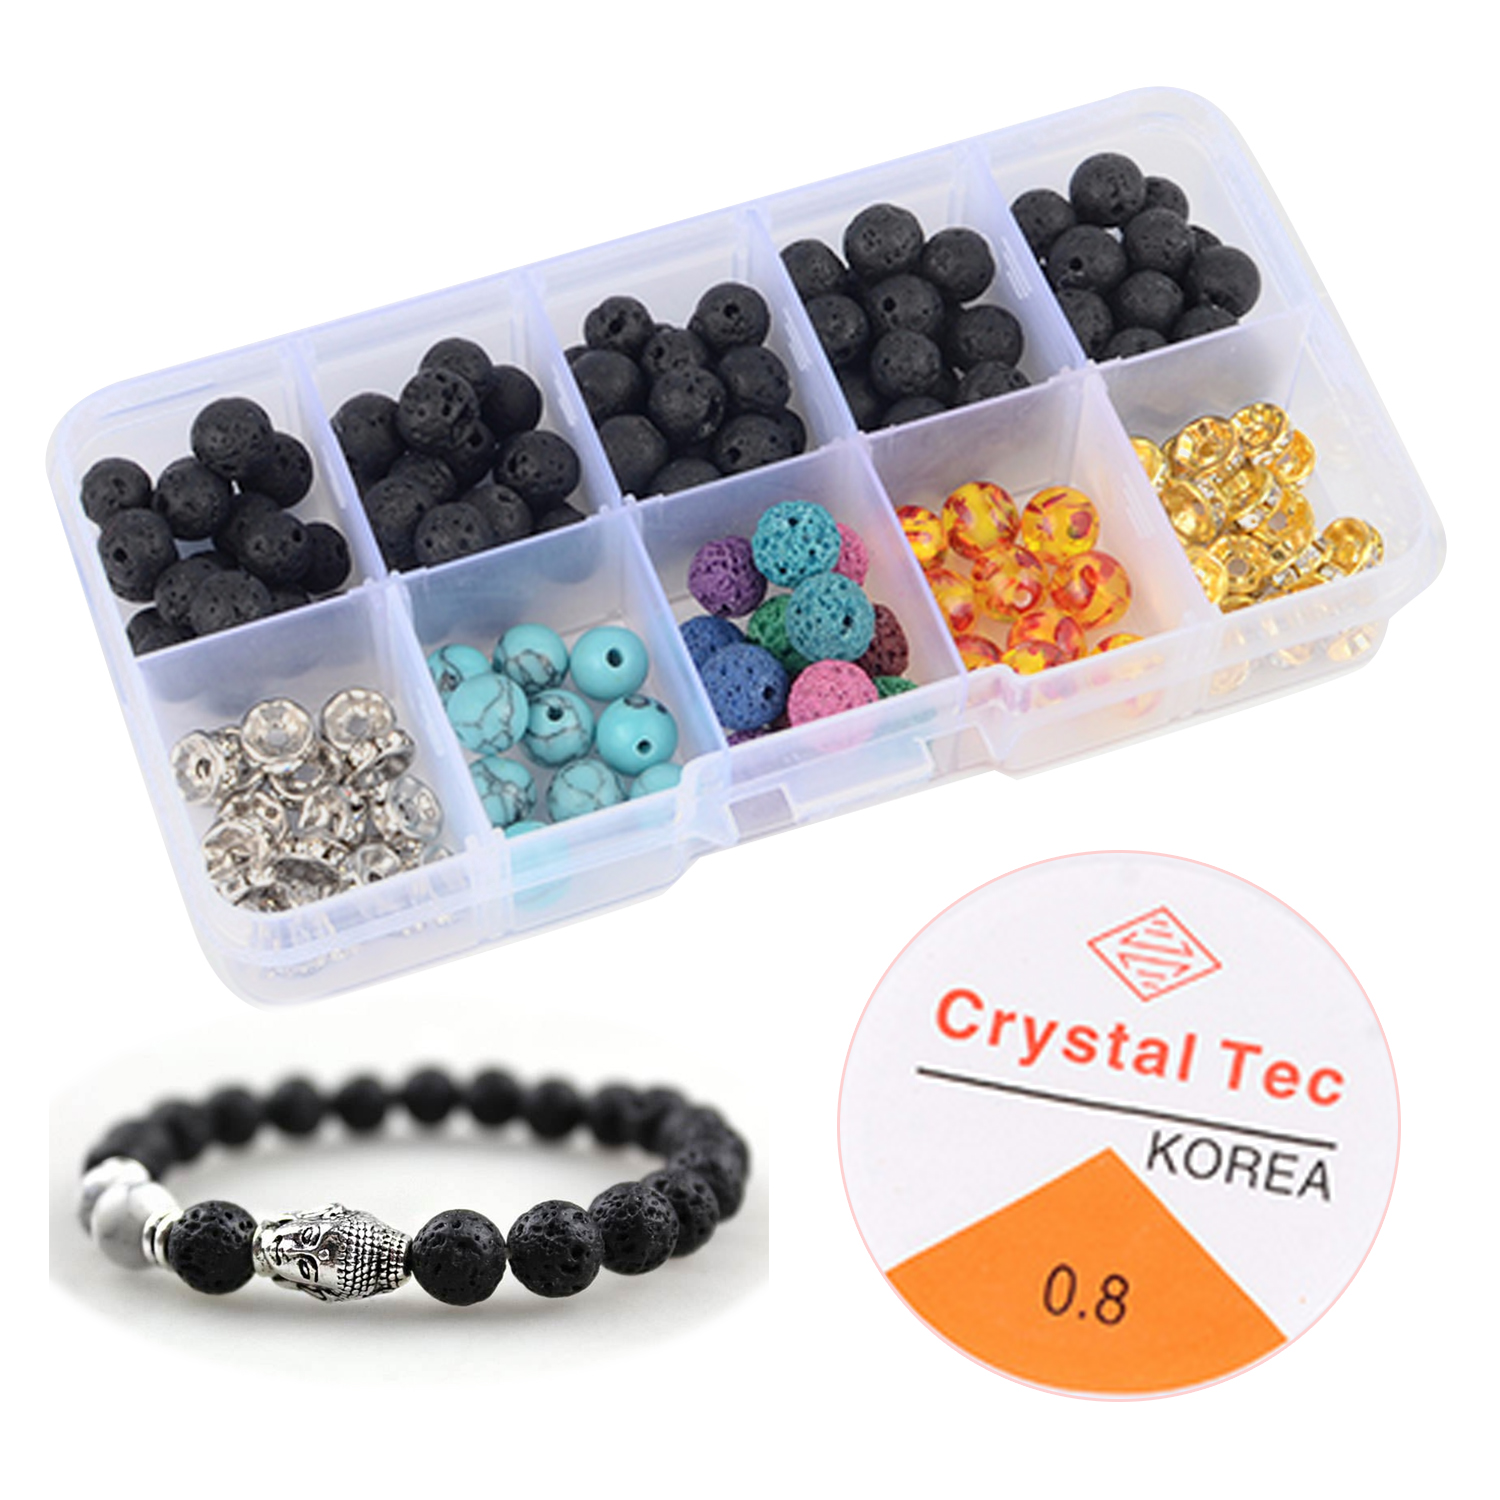 170Pcs 8mm Fashion Lava Stone Volcanic Rock Loose Beads Set With 1 Roll Crystal String Toys Gifts DIY Bracelet Necklace Making